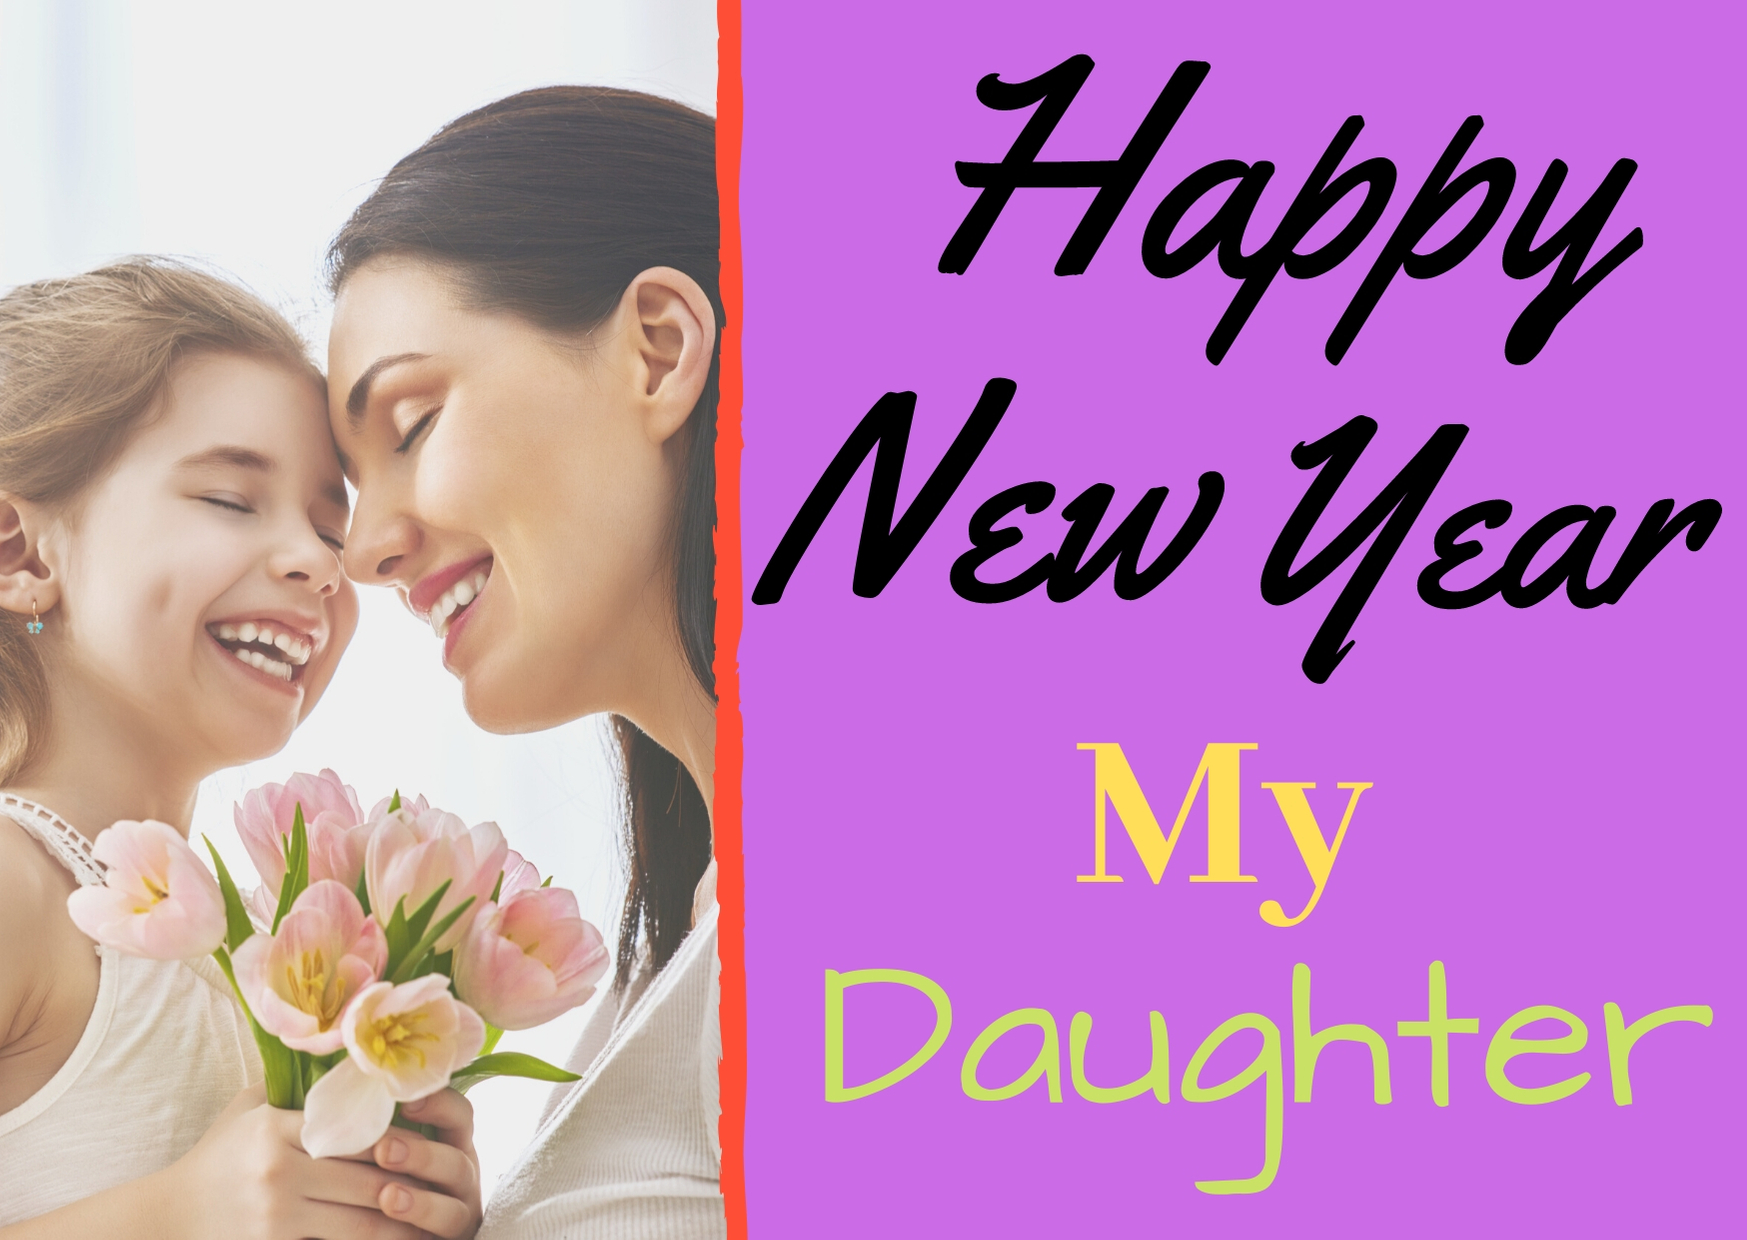 Happy New Year 2020 Wishes For Daughter